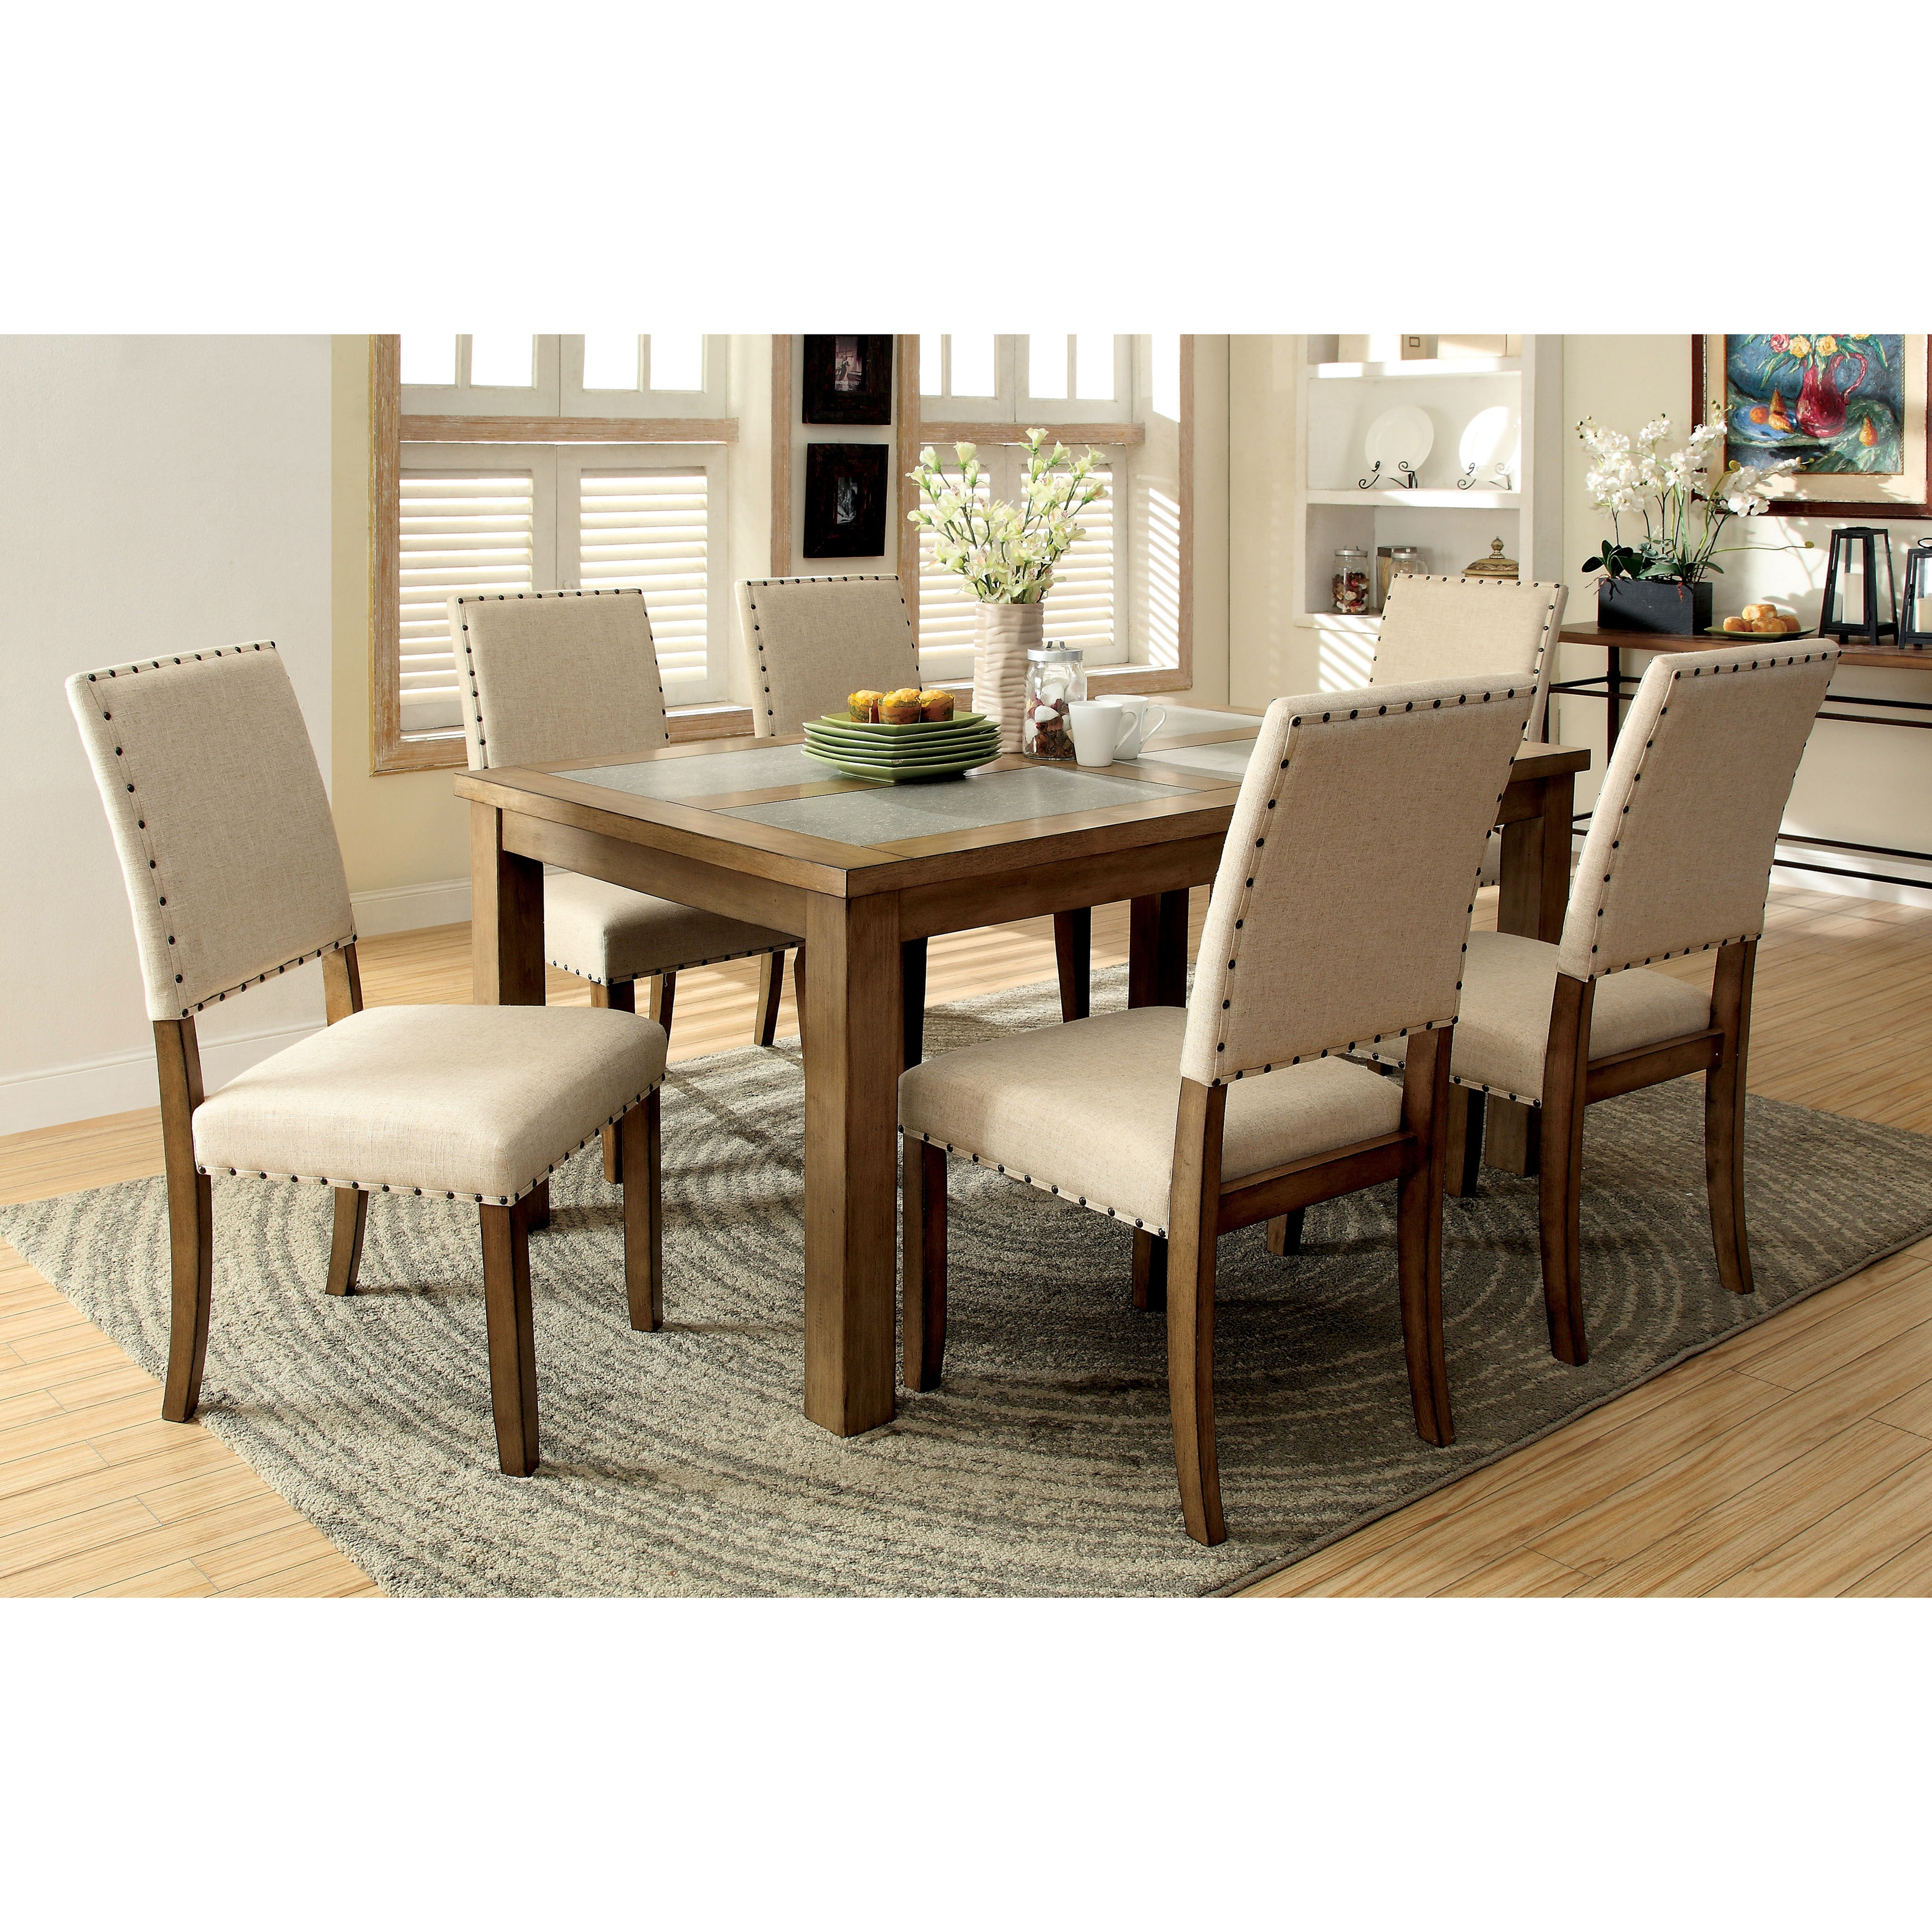 Furniture of America Veronte 7-Piece Stone Top Dining Set...